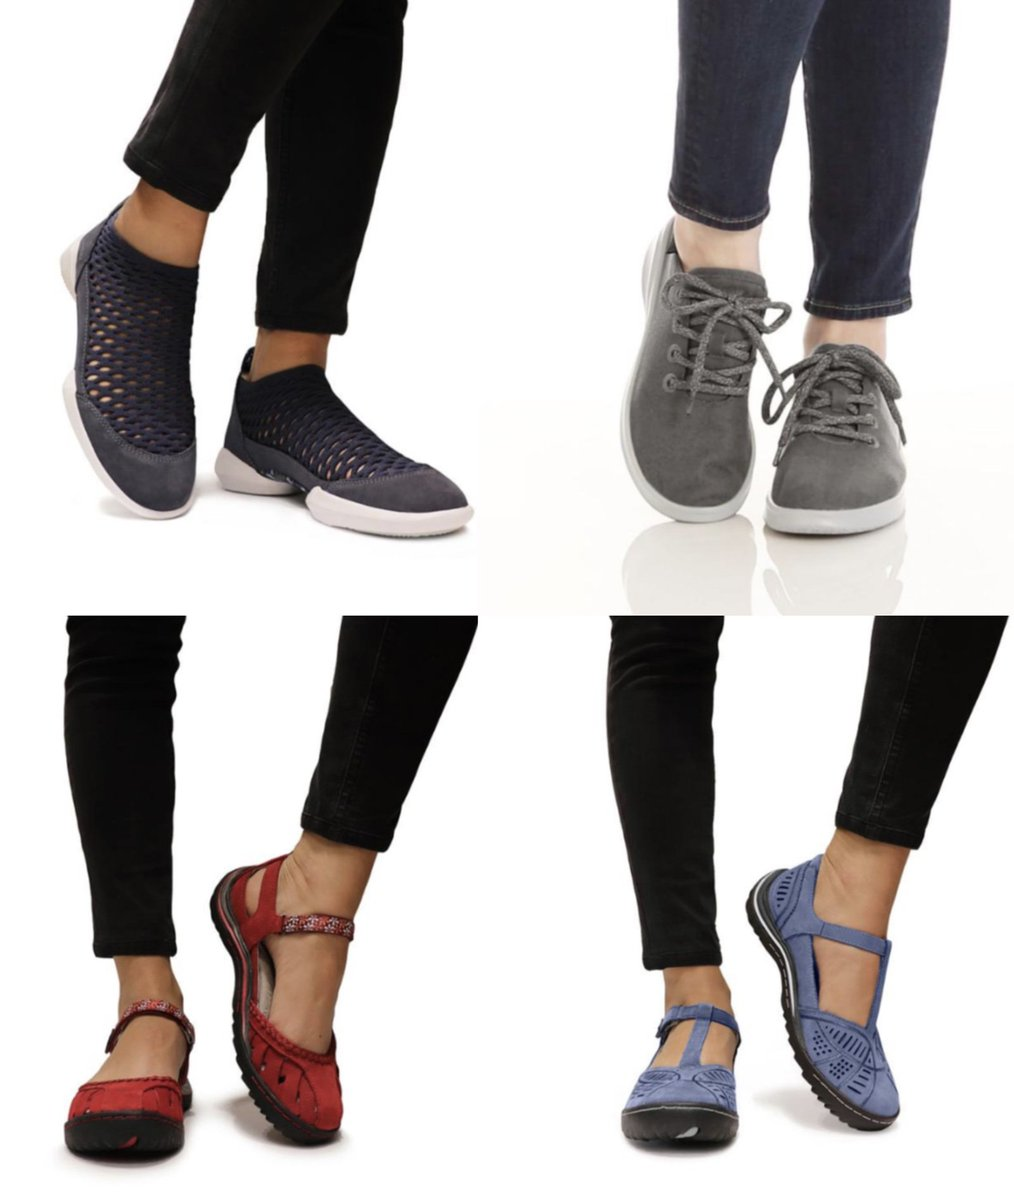 Dont miss out on our @GMA Daily Deal with @toryjohnson - @jambufootwear for 50%! gma.abc/2DLuNOp #GMADeals